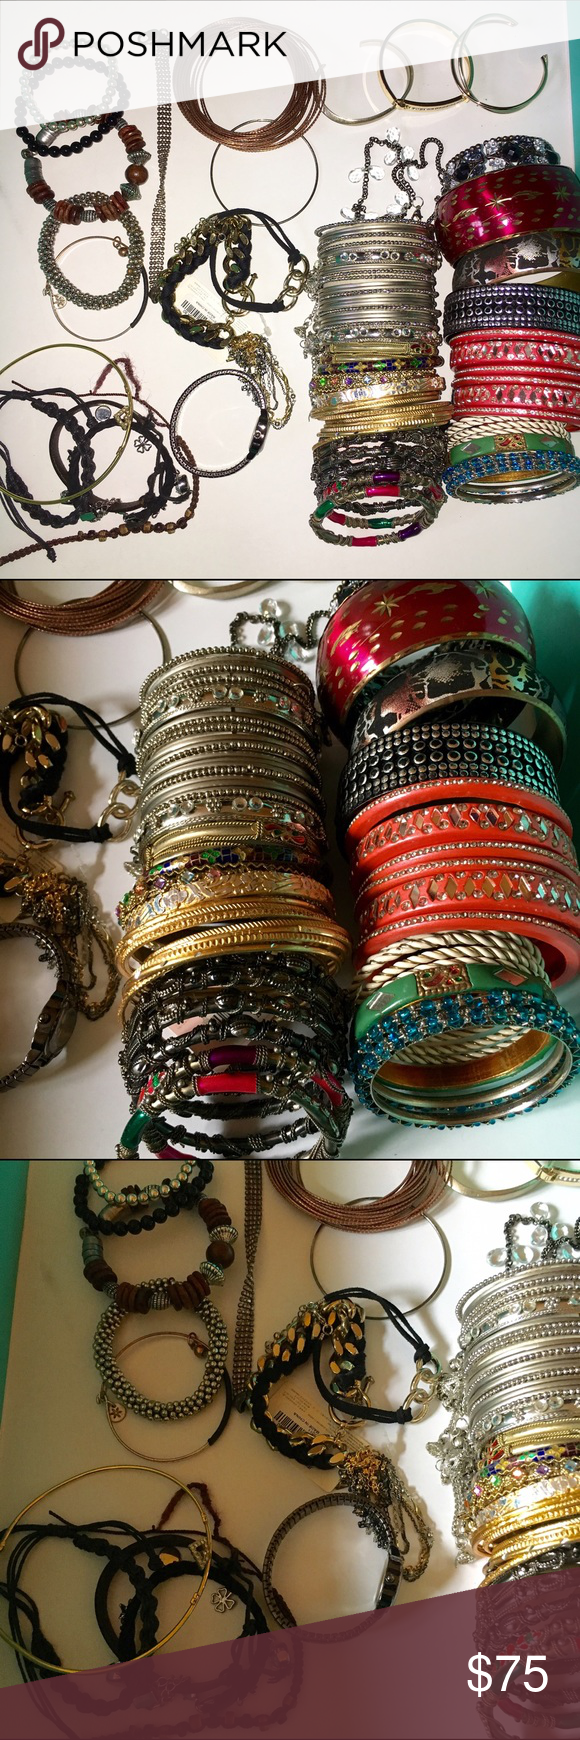 Bracelet collection 35 piece 35 individual sets of arm jewelry- bracelets, bangles, and a watch and arm band. All are in great shape with many new and unworn pieces Jewelry Bracelets